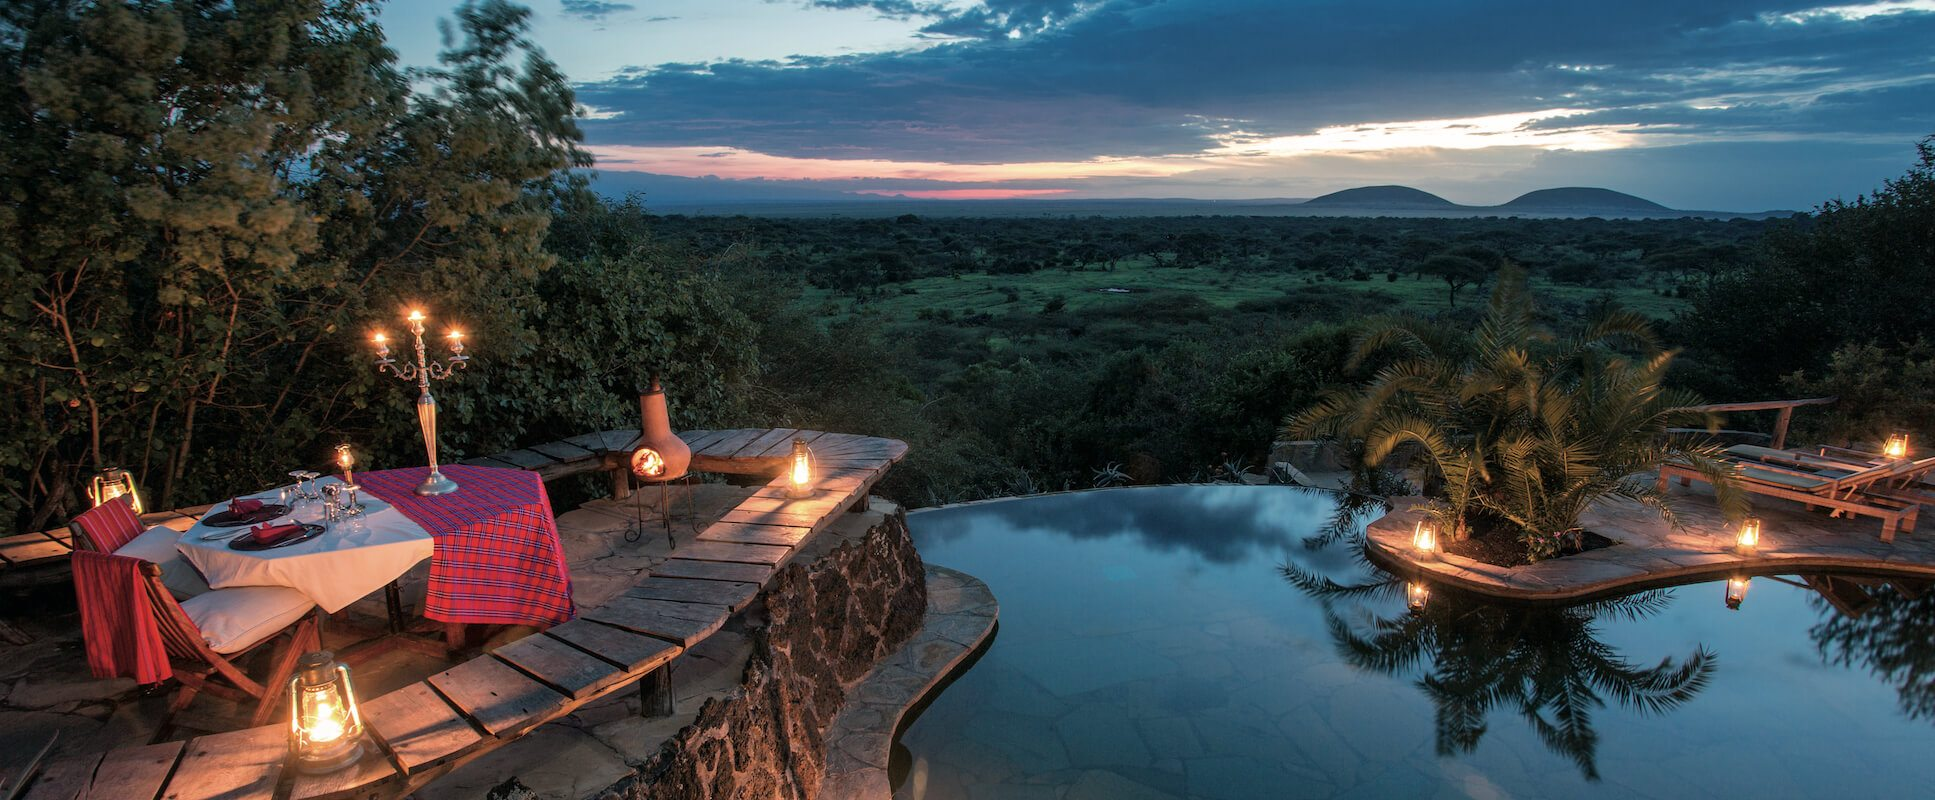 Kenya_SouthEastChyuluHills_Great Plains OlDonyo_Private Dining